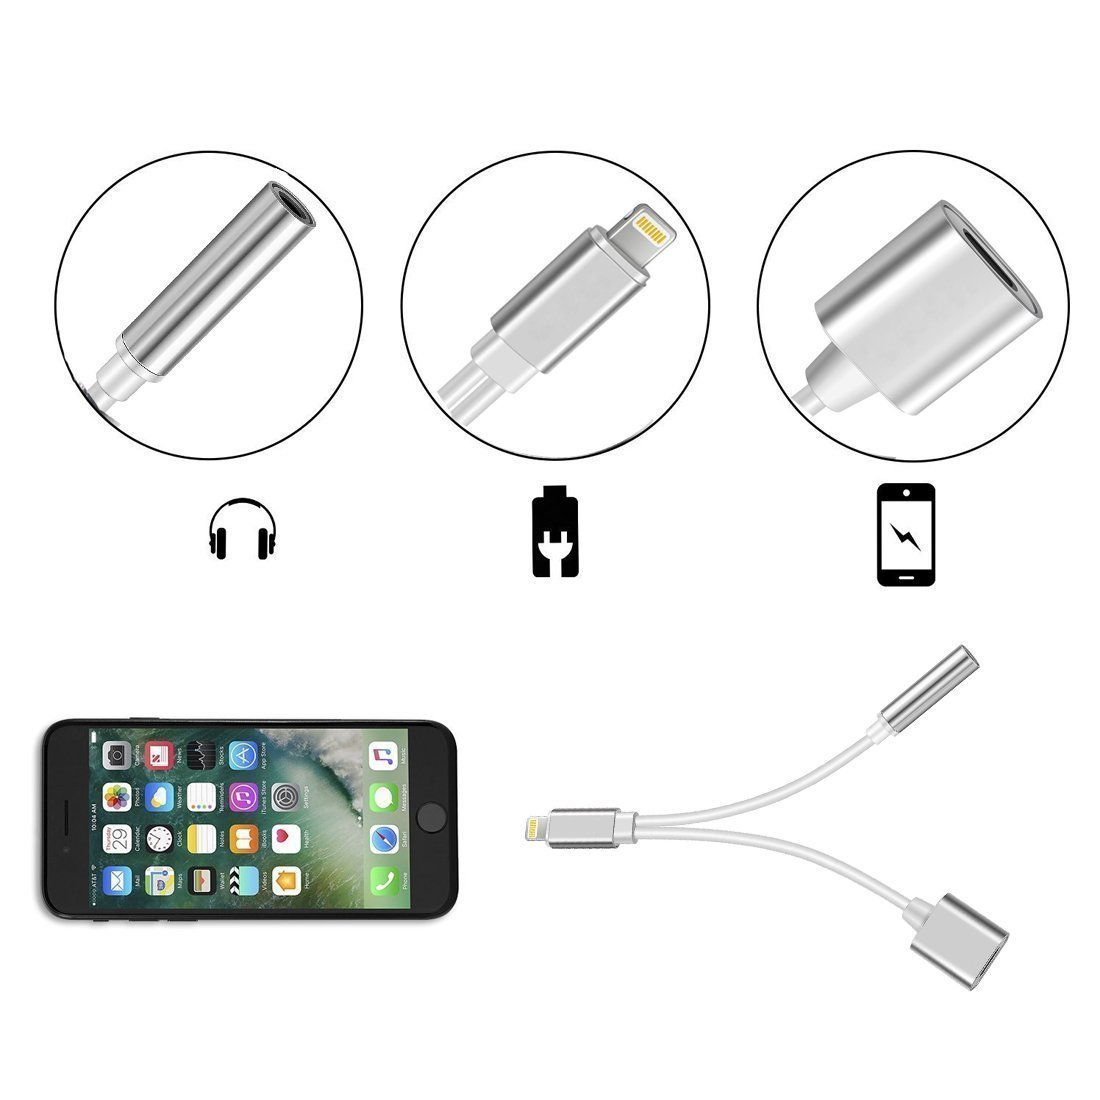 iPhone 7/7Plus/8/8Plus/X Adapter, 2 in 1 Dual Lightning Headphone Jack Audio + Charge Cable Splitter, Compatible for iOS 10.3, iOS 11 or later